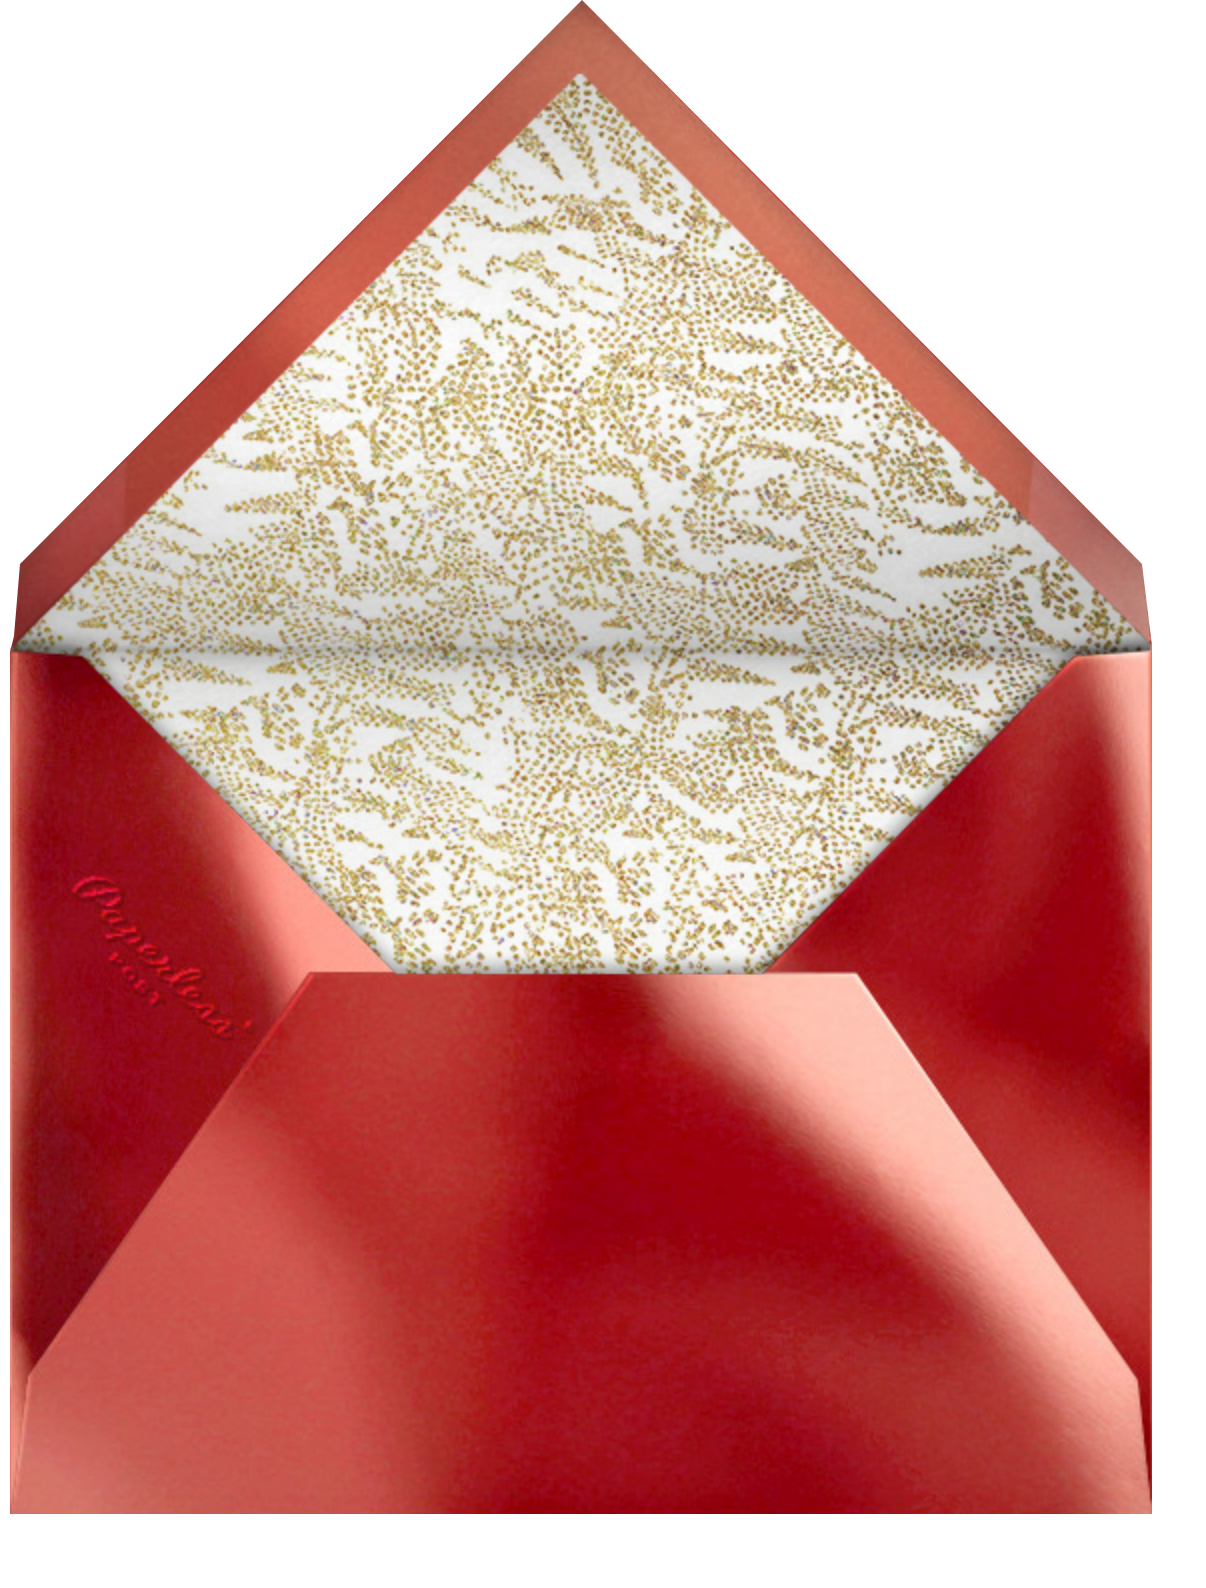 Crystal Pines (Invitation) - Gold - Paperless Post - Christmas party - envelope back